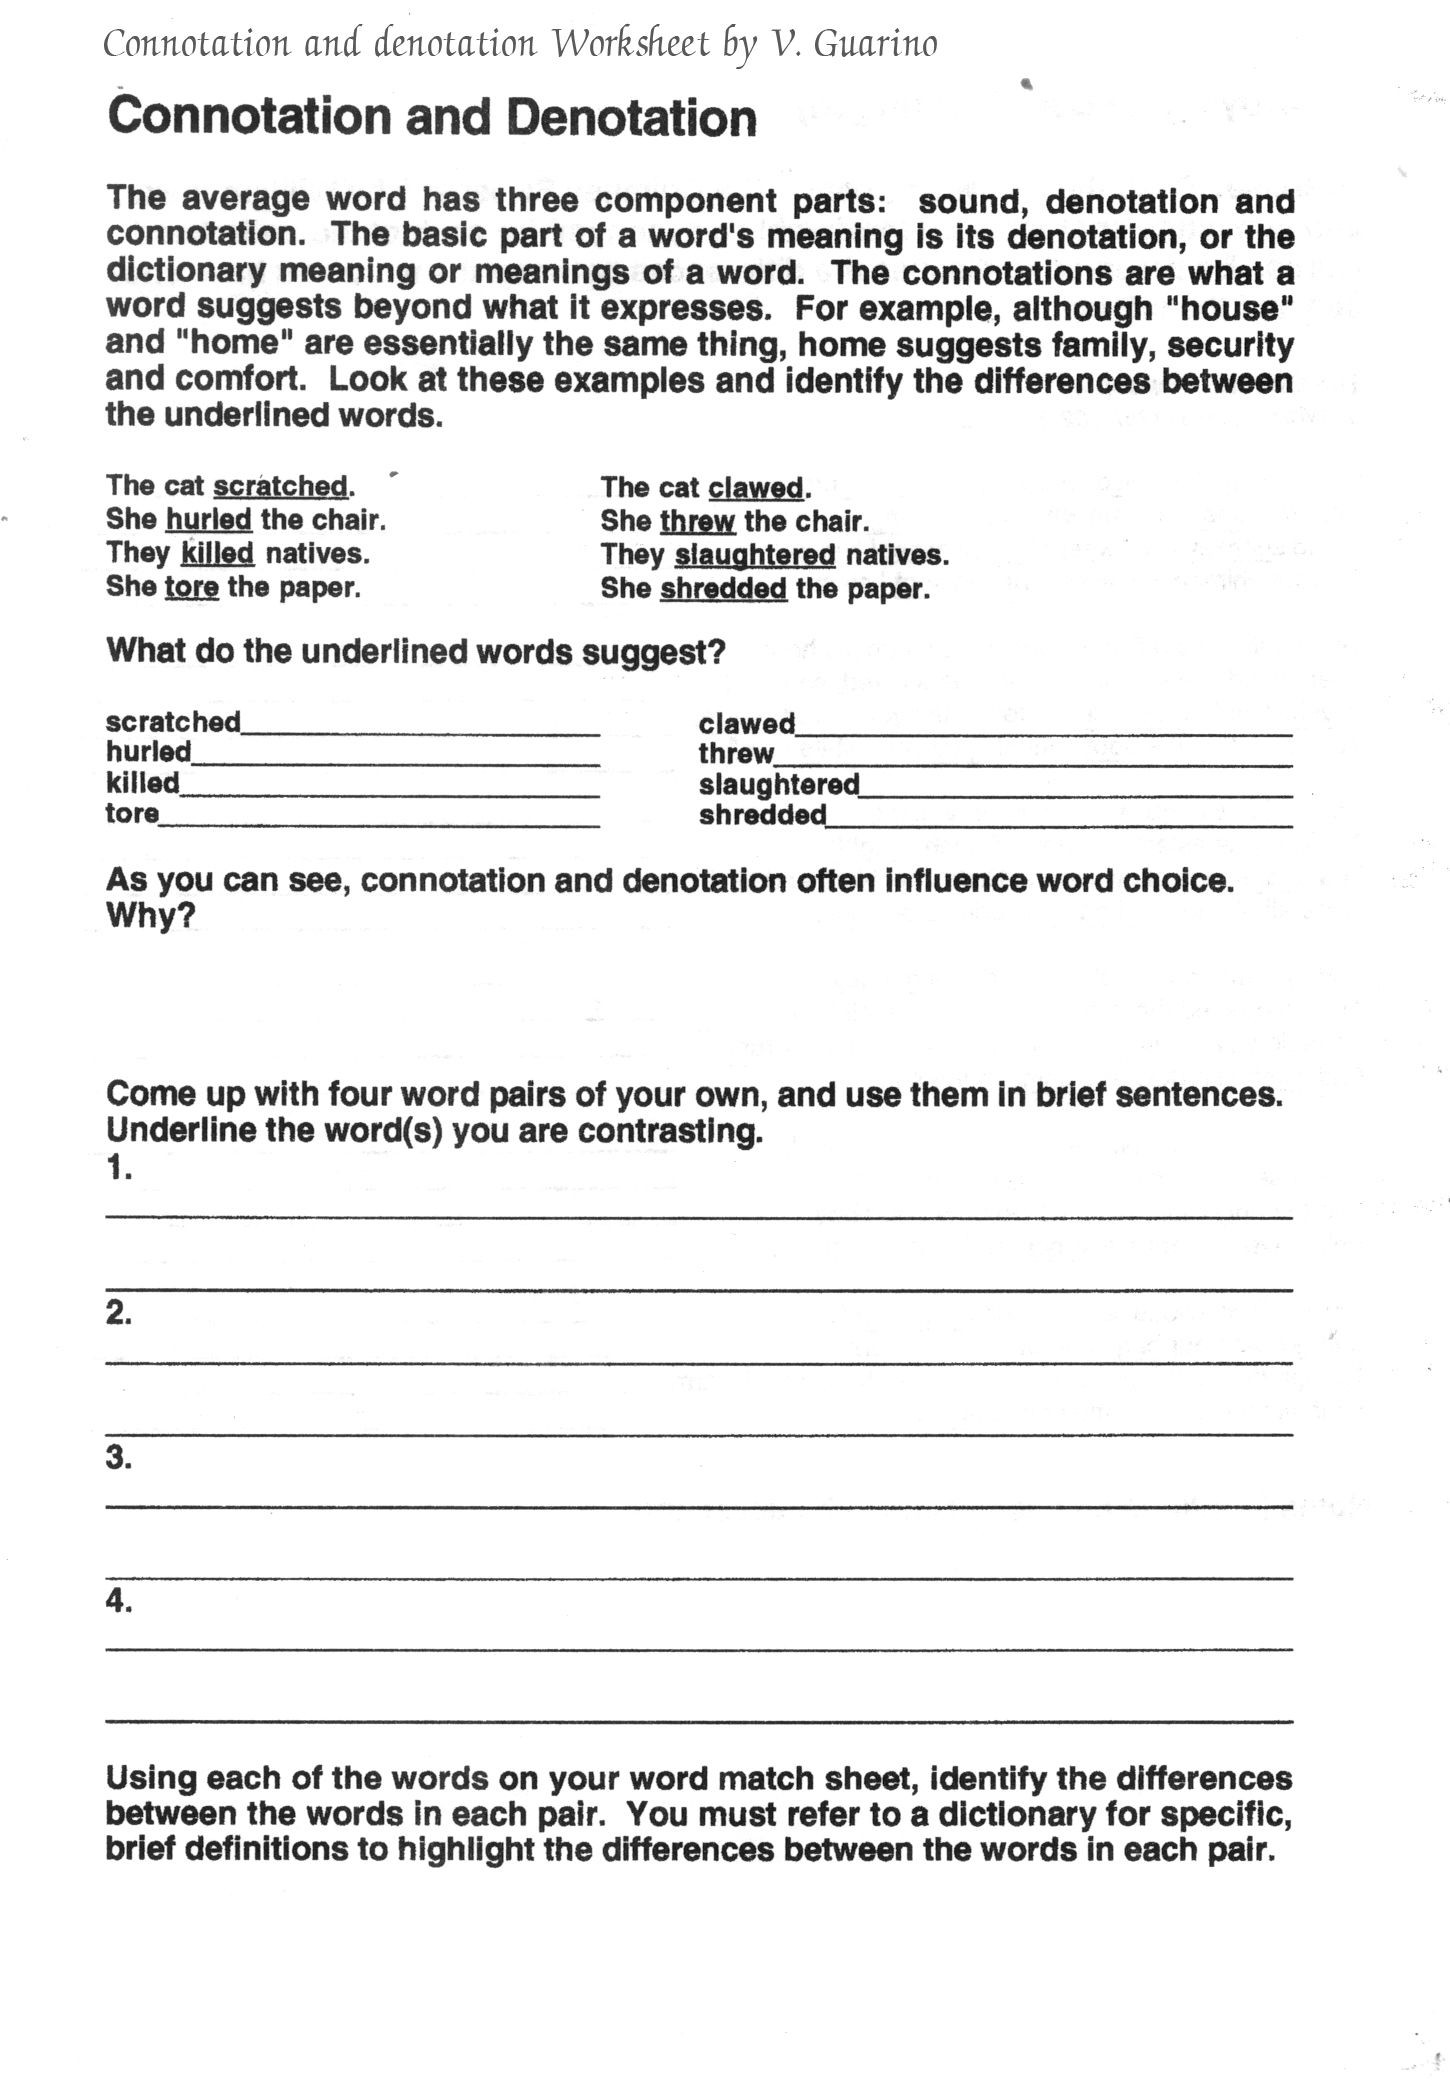 Denotation and Connotation Worksheet Connotation and Denotation Worksheets for Middle School